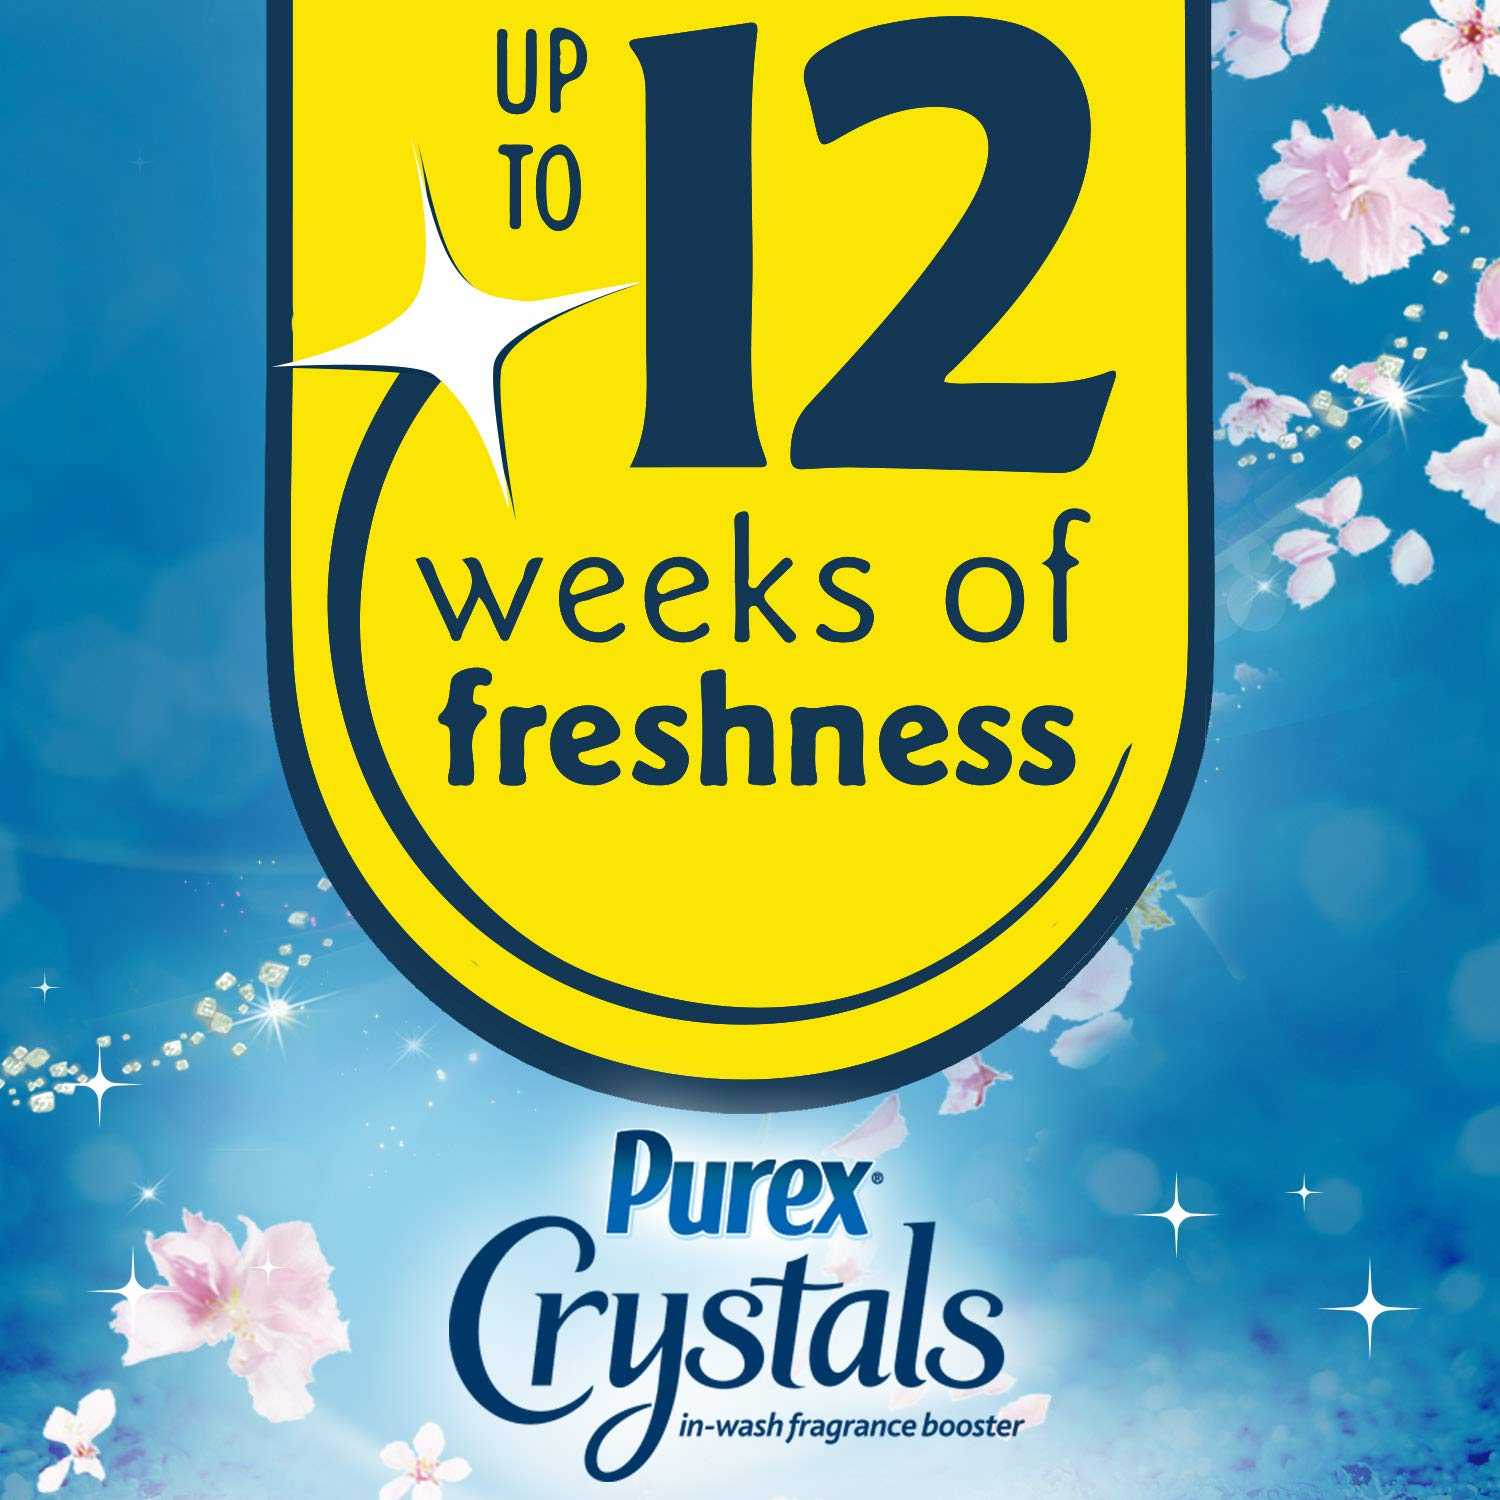 Amazon.com: Purex Crystals in-Wash Fragrance and Scent Booster, Fresh Spring Waters, 21 Ounce: Health & Personal Care